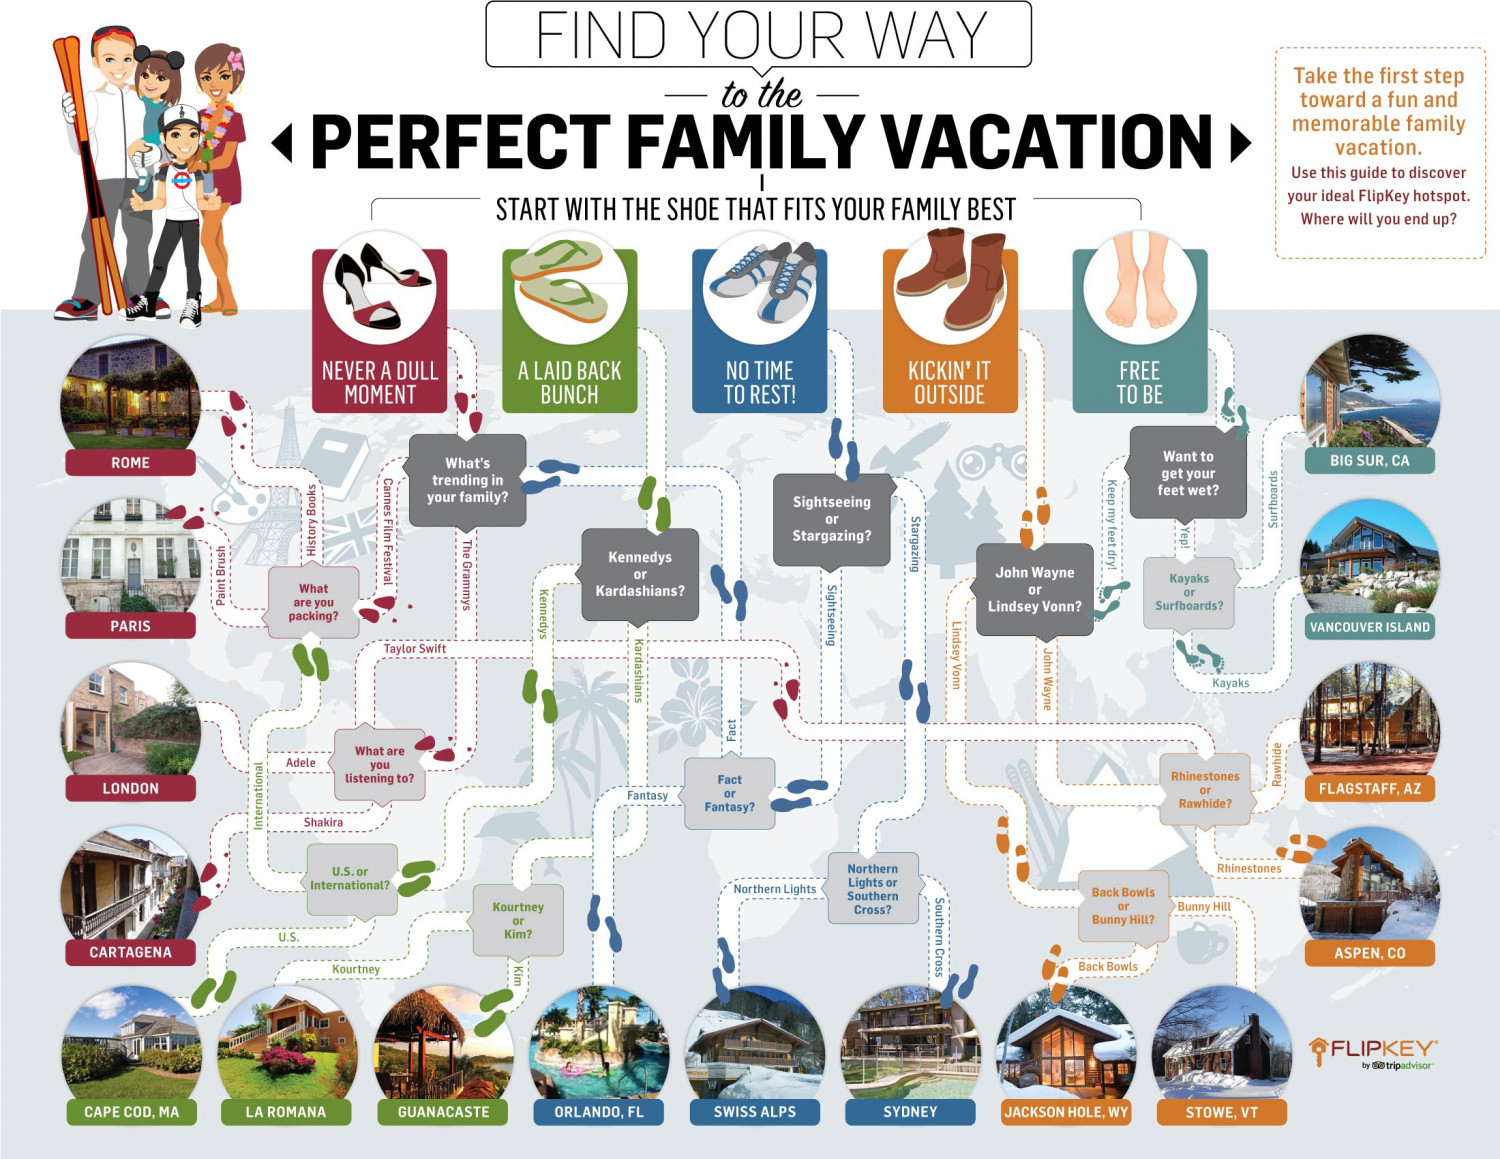 Find Your Way To The Perfect Family Vacation